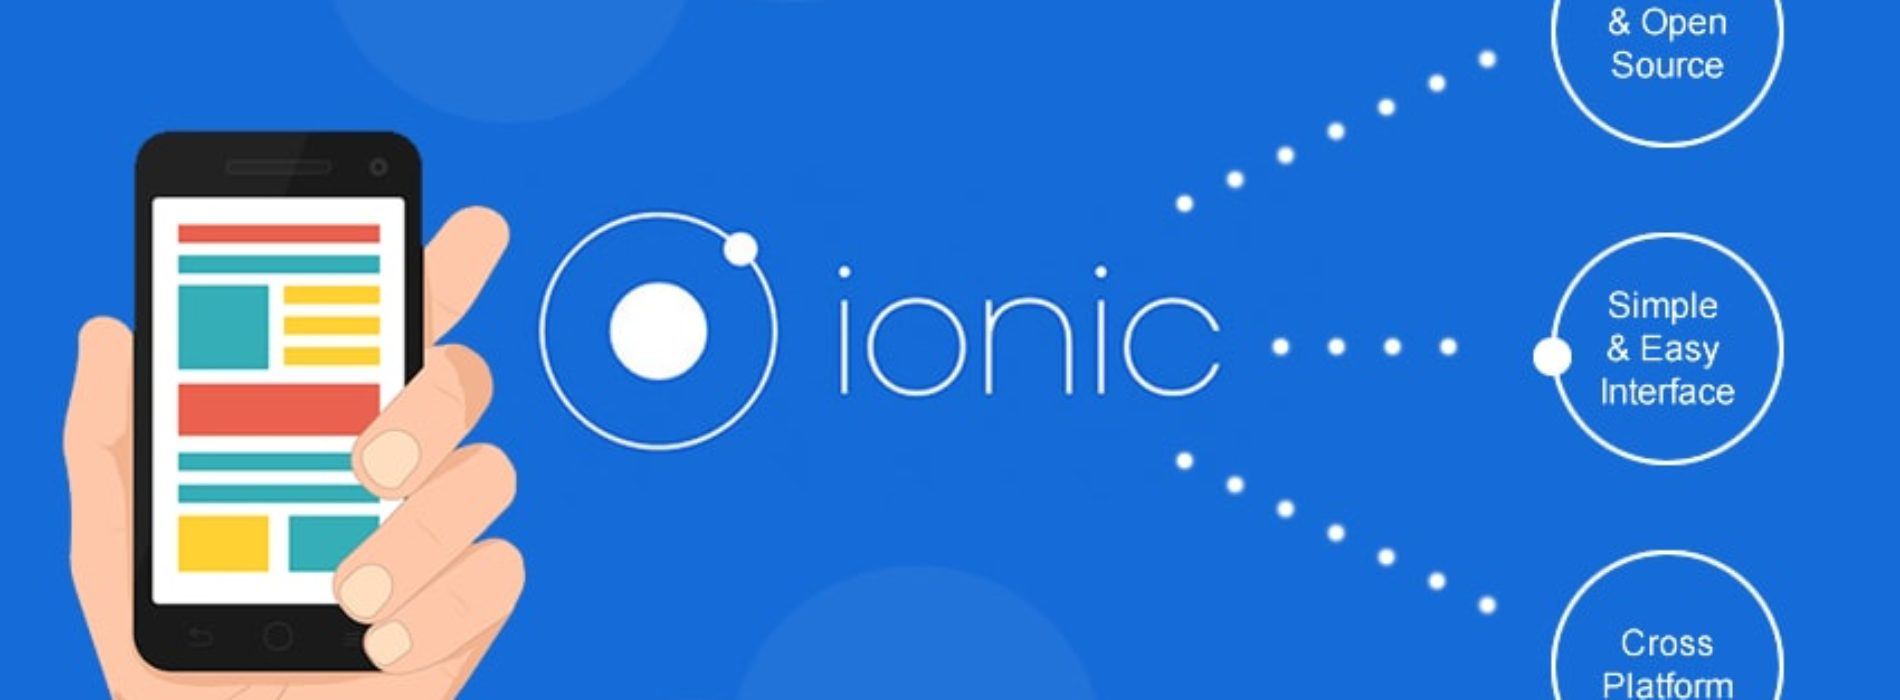 Criando Componente Accordion List com Ionic 3